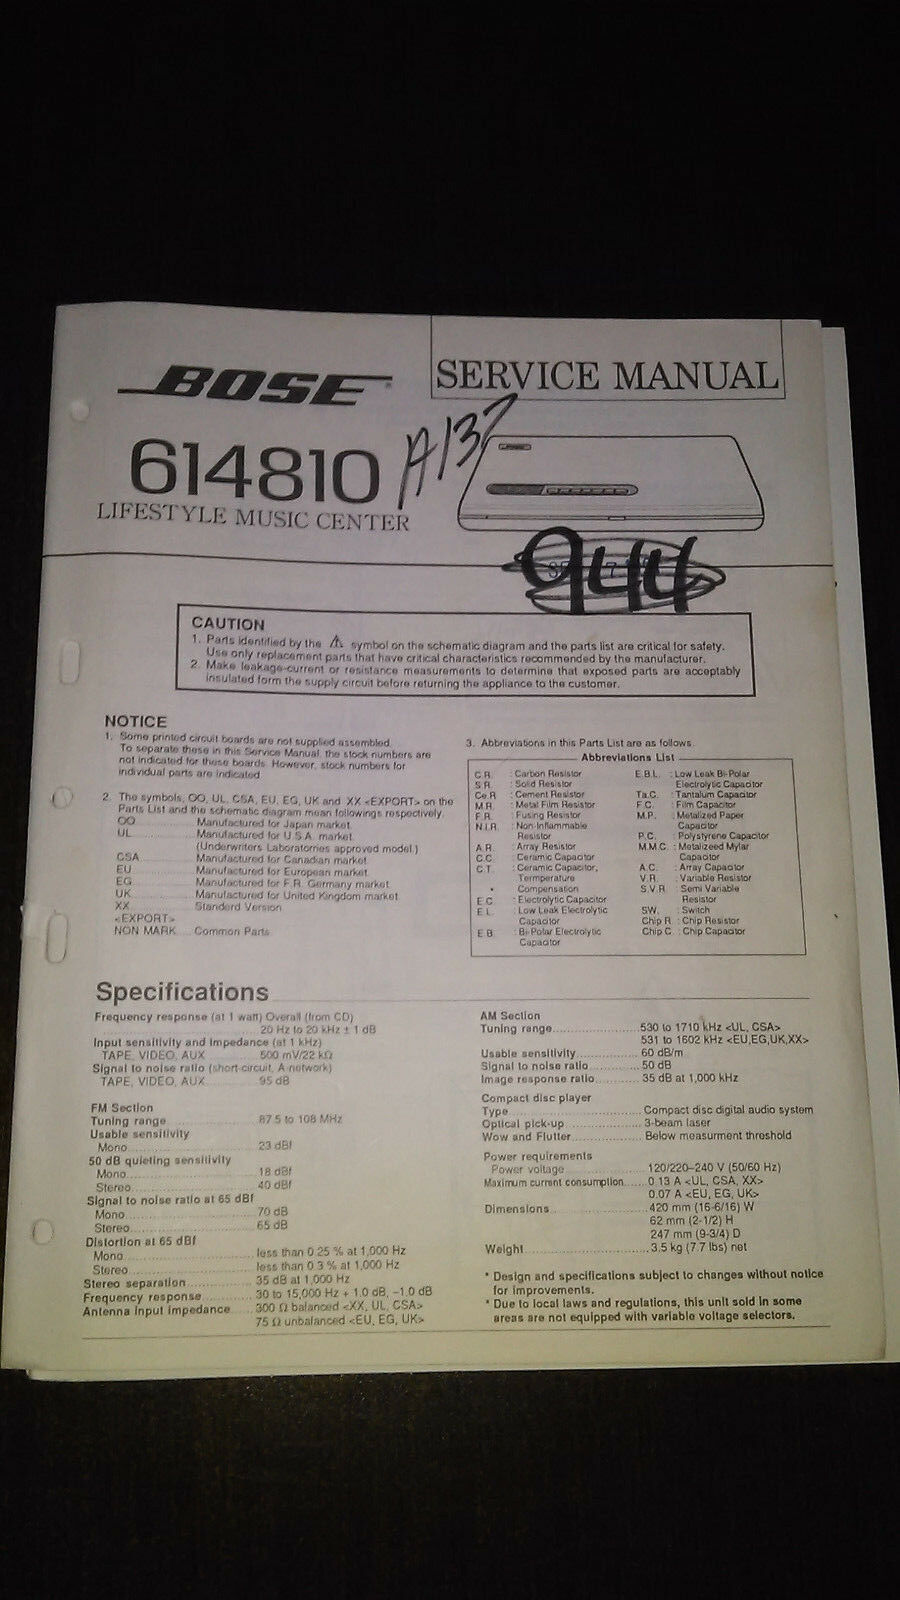 Bose Lifestyle Series Model 614810 Cd Service Manual Original Repair 235 Home Theater Wiring Diagram For 1 Of 1free Shipping